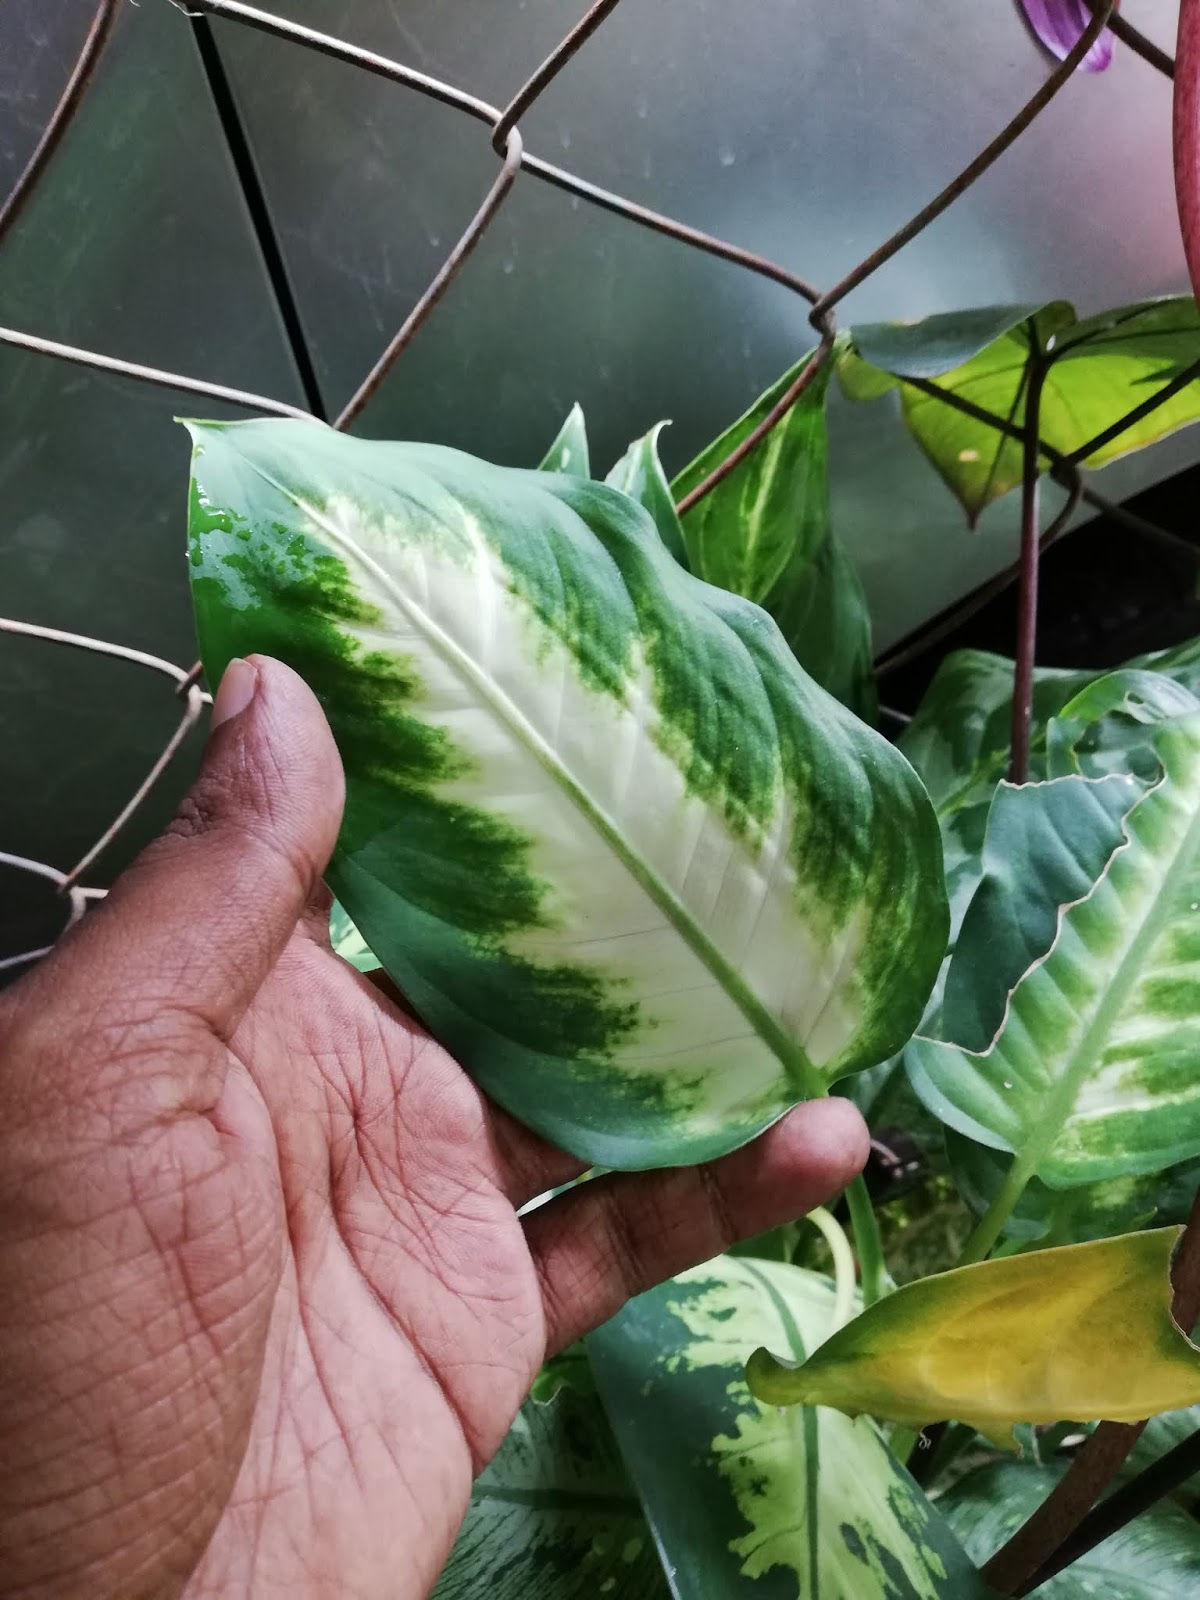 Garden Chronicles : Dumbcane - ffenbachia - Best Indoor ... on names of house buildings, names of dracaena plants, names of plants inside, names of dry plants, names of office plants, indoor plants, names of herbaceous perennials, names of different houseplants, scientific names of plants, names of gifts, names of unusual plants, names of flowers, names of landscape plants, names of elephant ear plants, names of hibiscus, names of seashore plants, names of climbers, names of fuchsias, names of house design, names of angel plants,